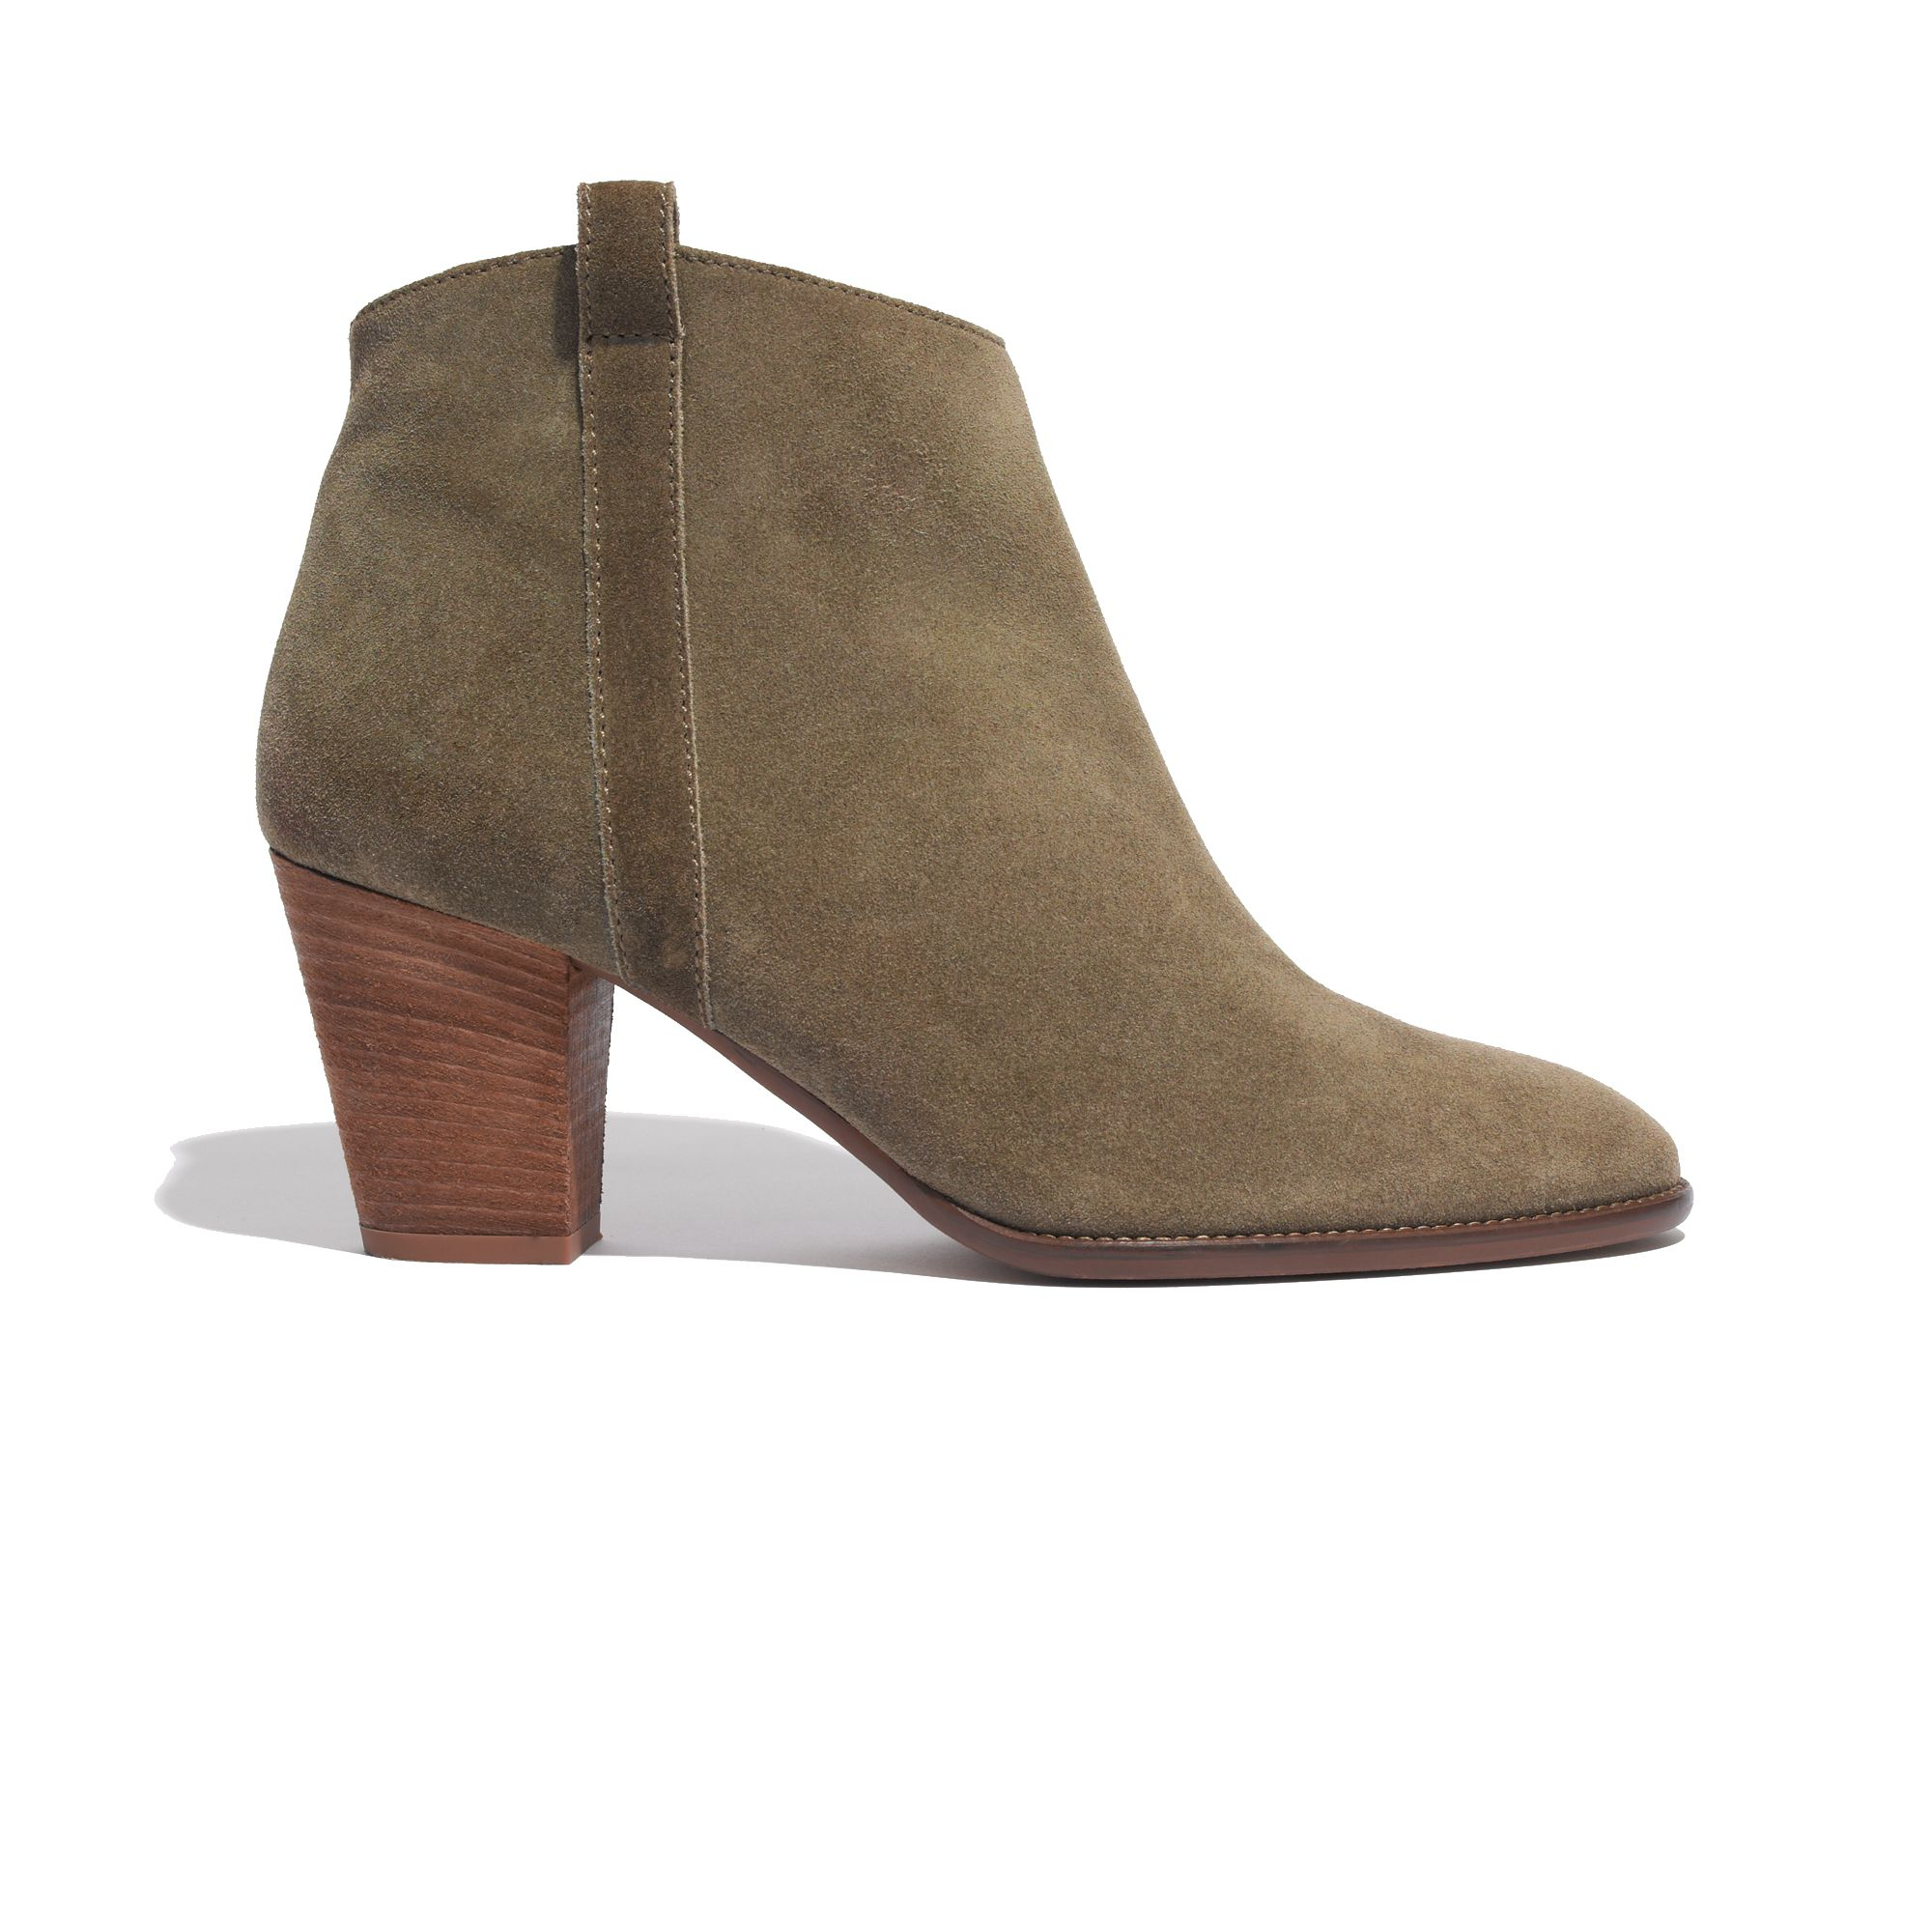 madewell the billie boot in suede in brown golden spinach